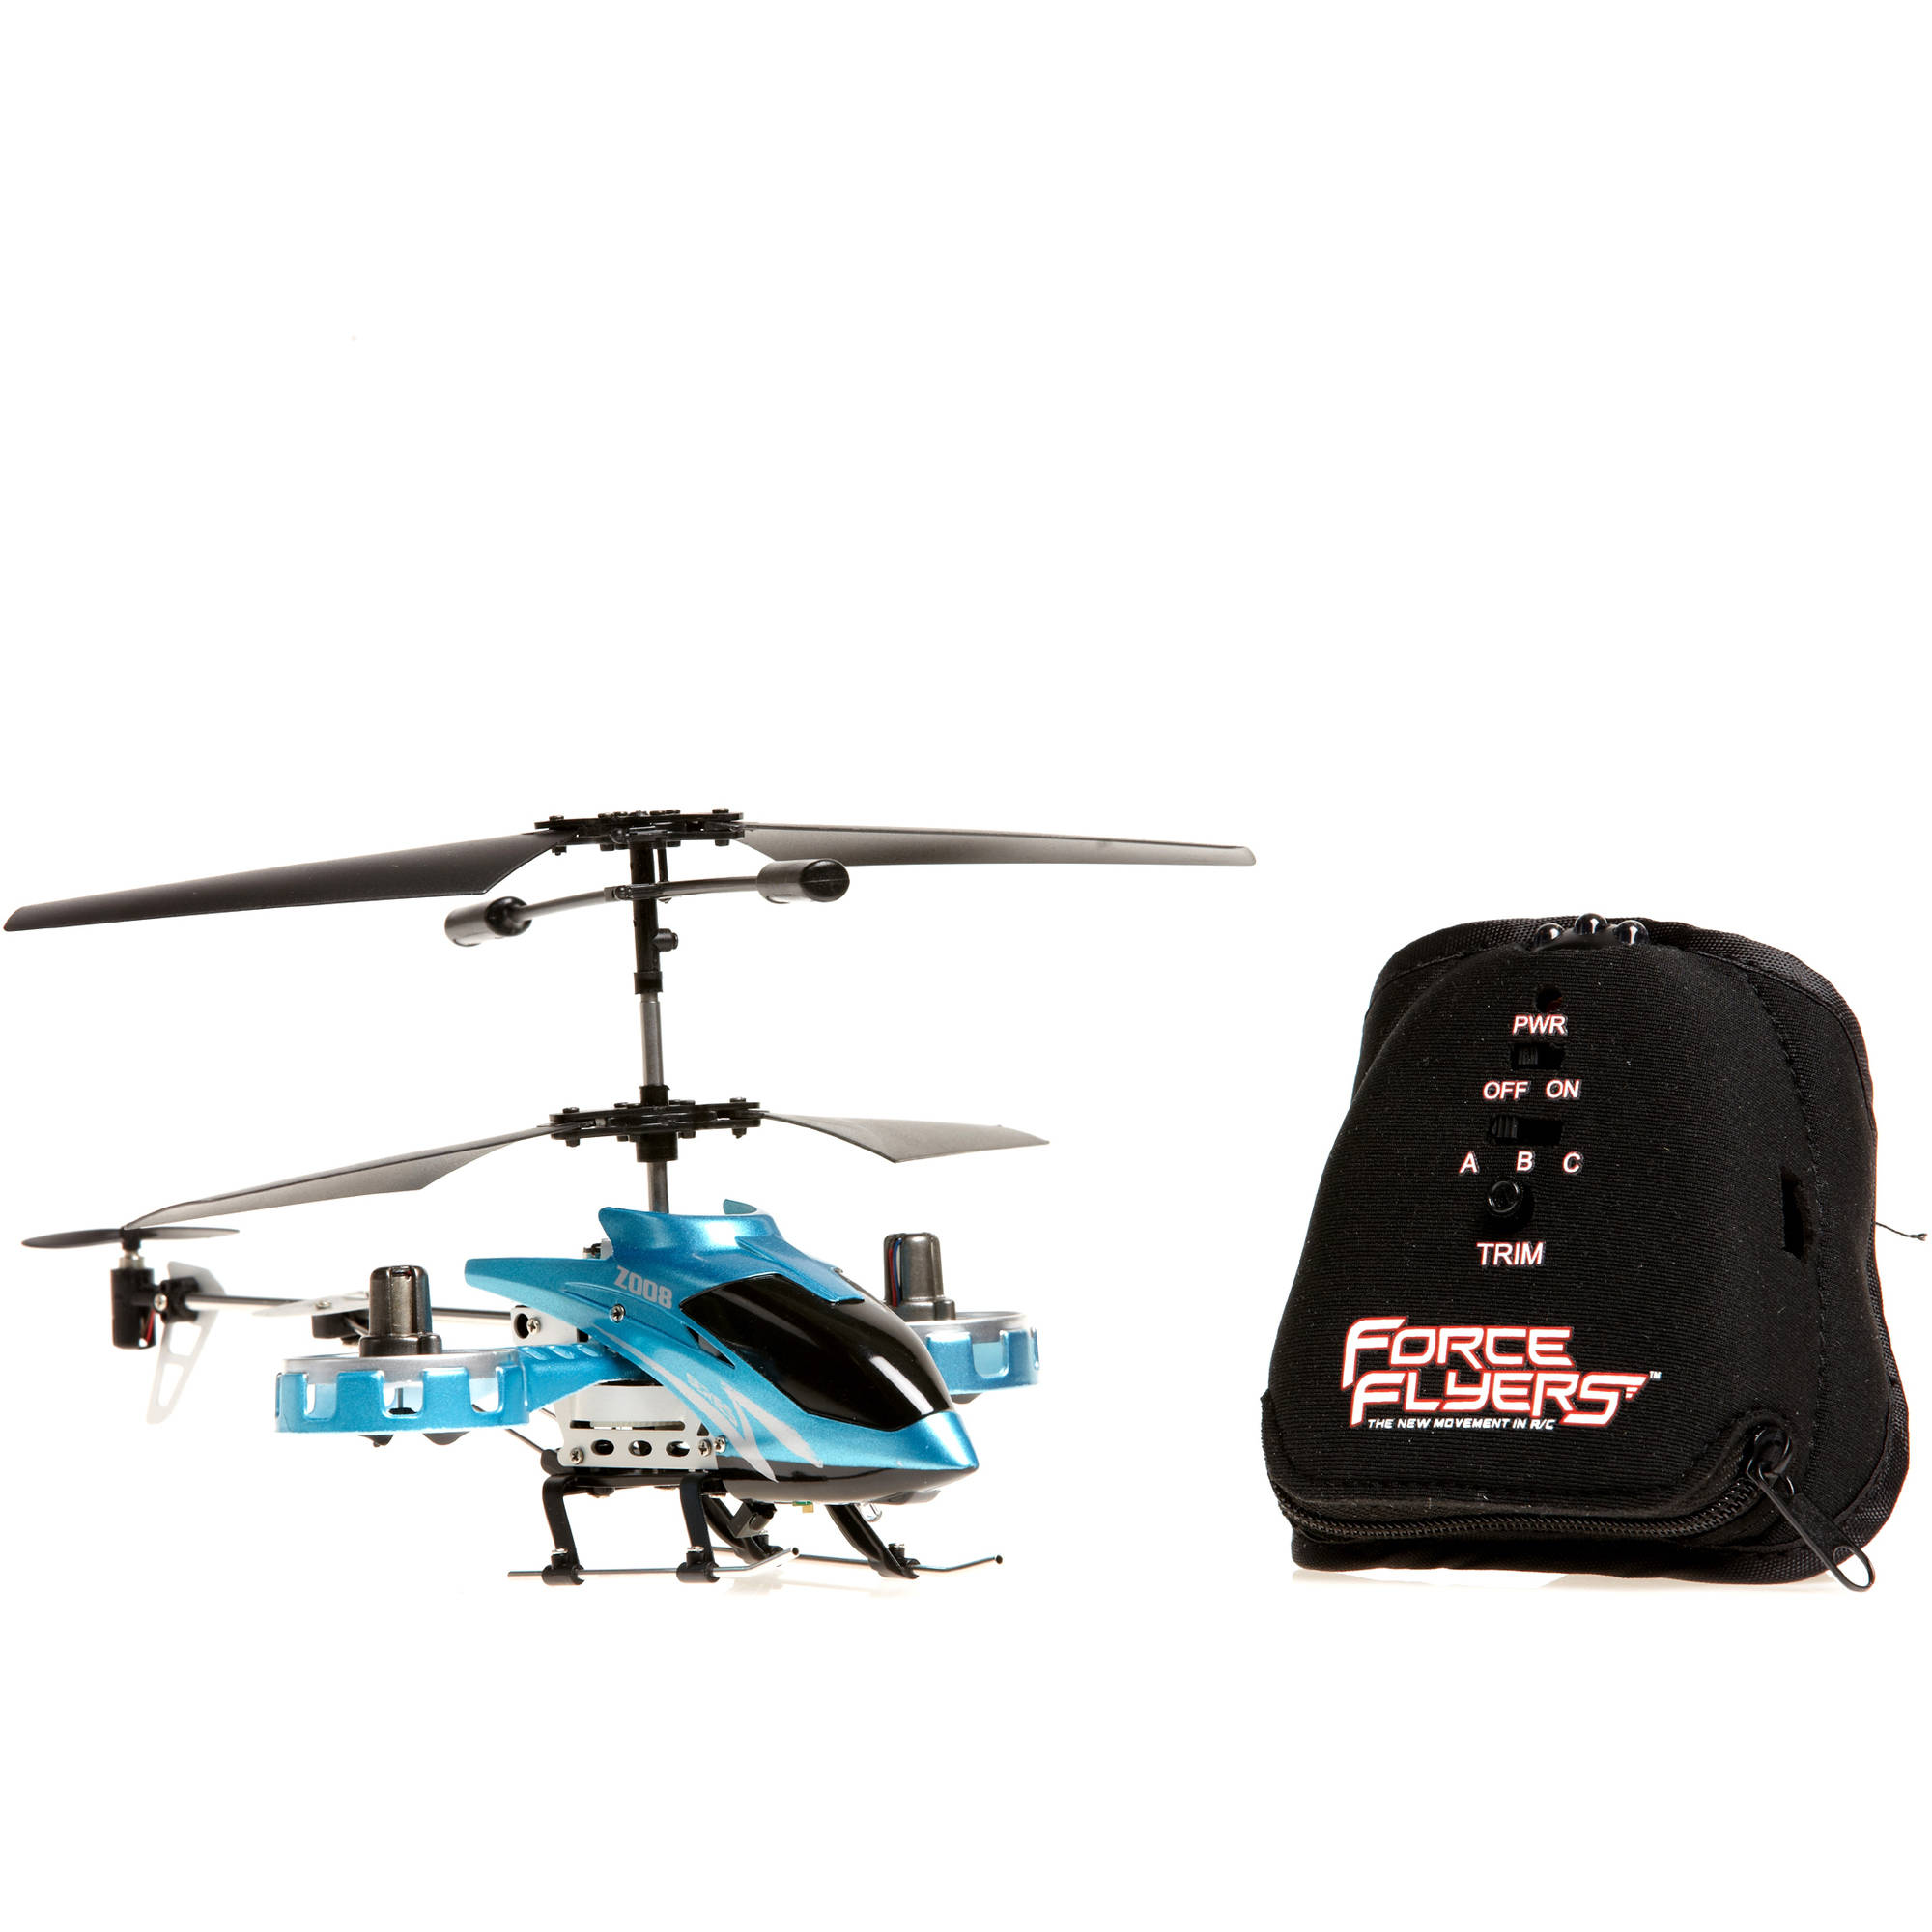 Force Flyers Raptor 4-Channel Motion Control Helicopter, Blue by PaulG Toys